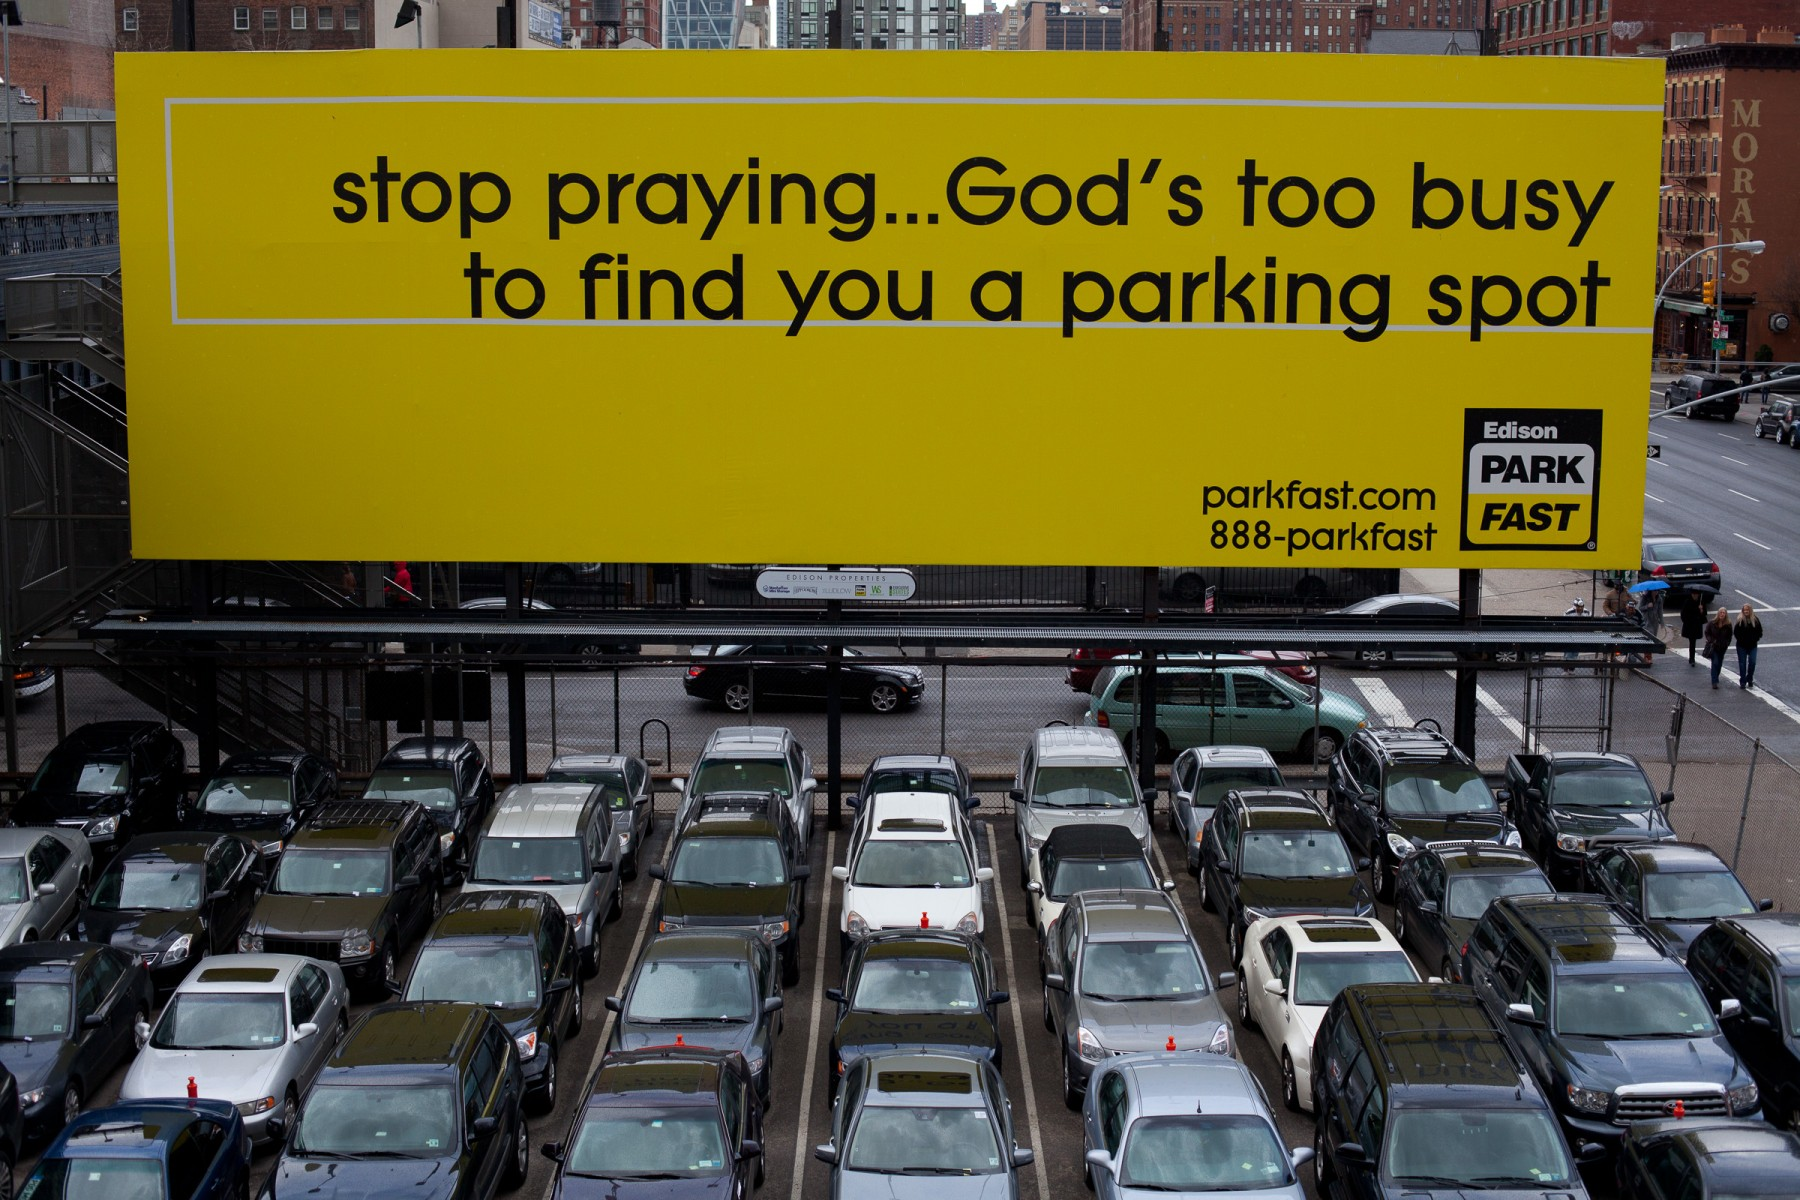 'Stop praying' billboard in NYC